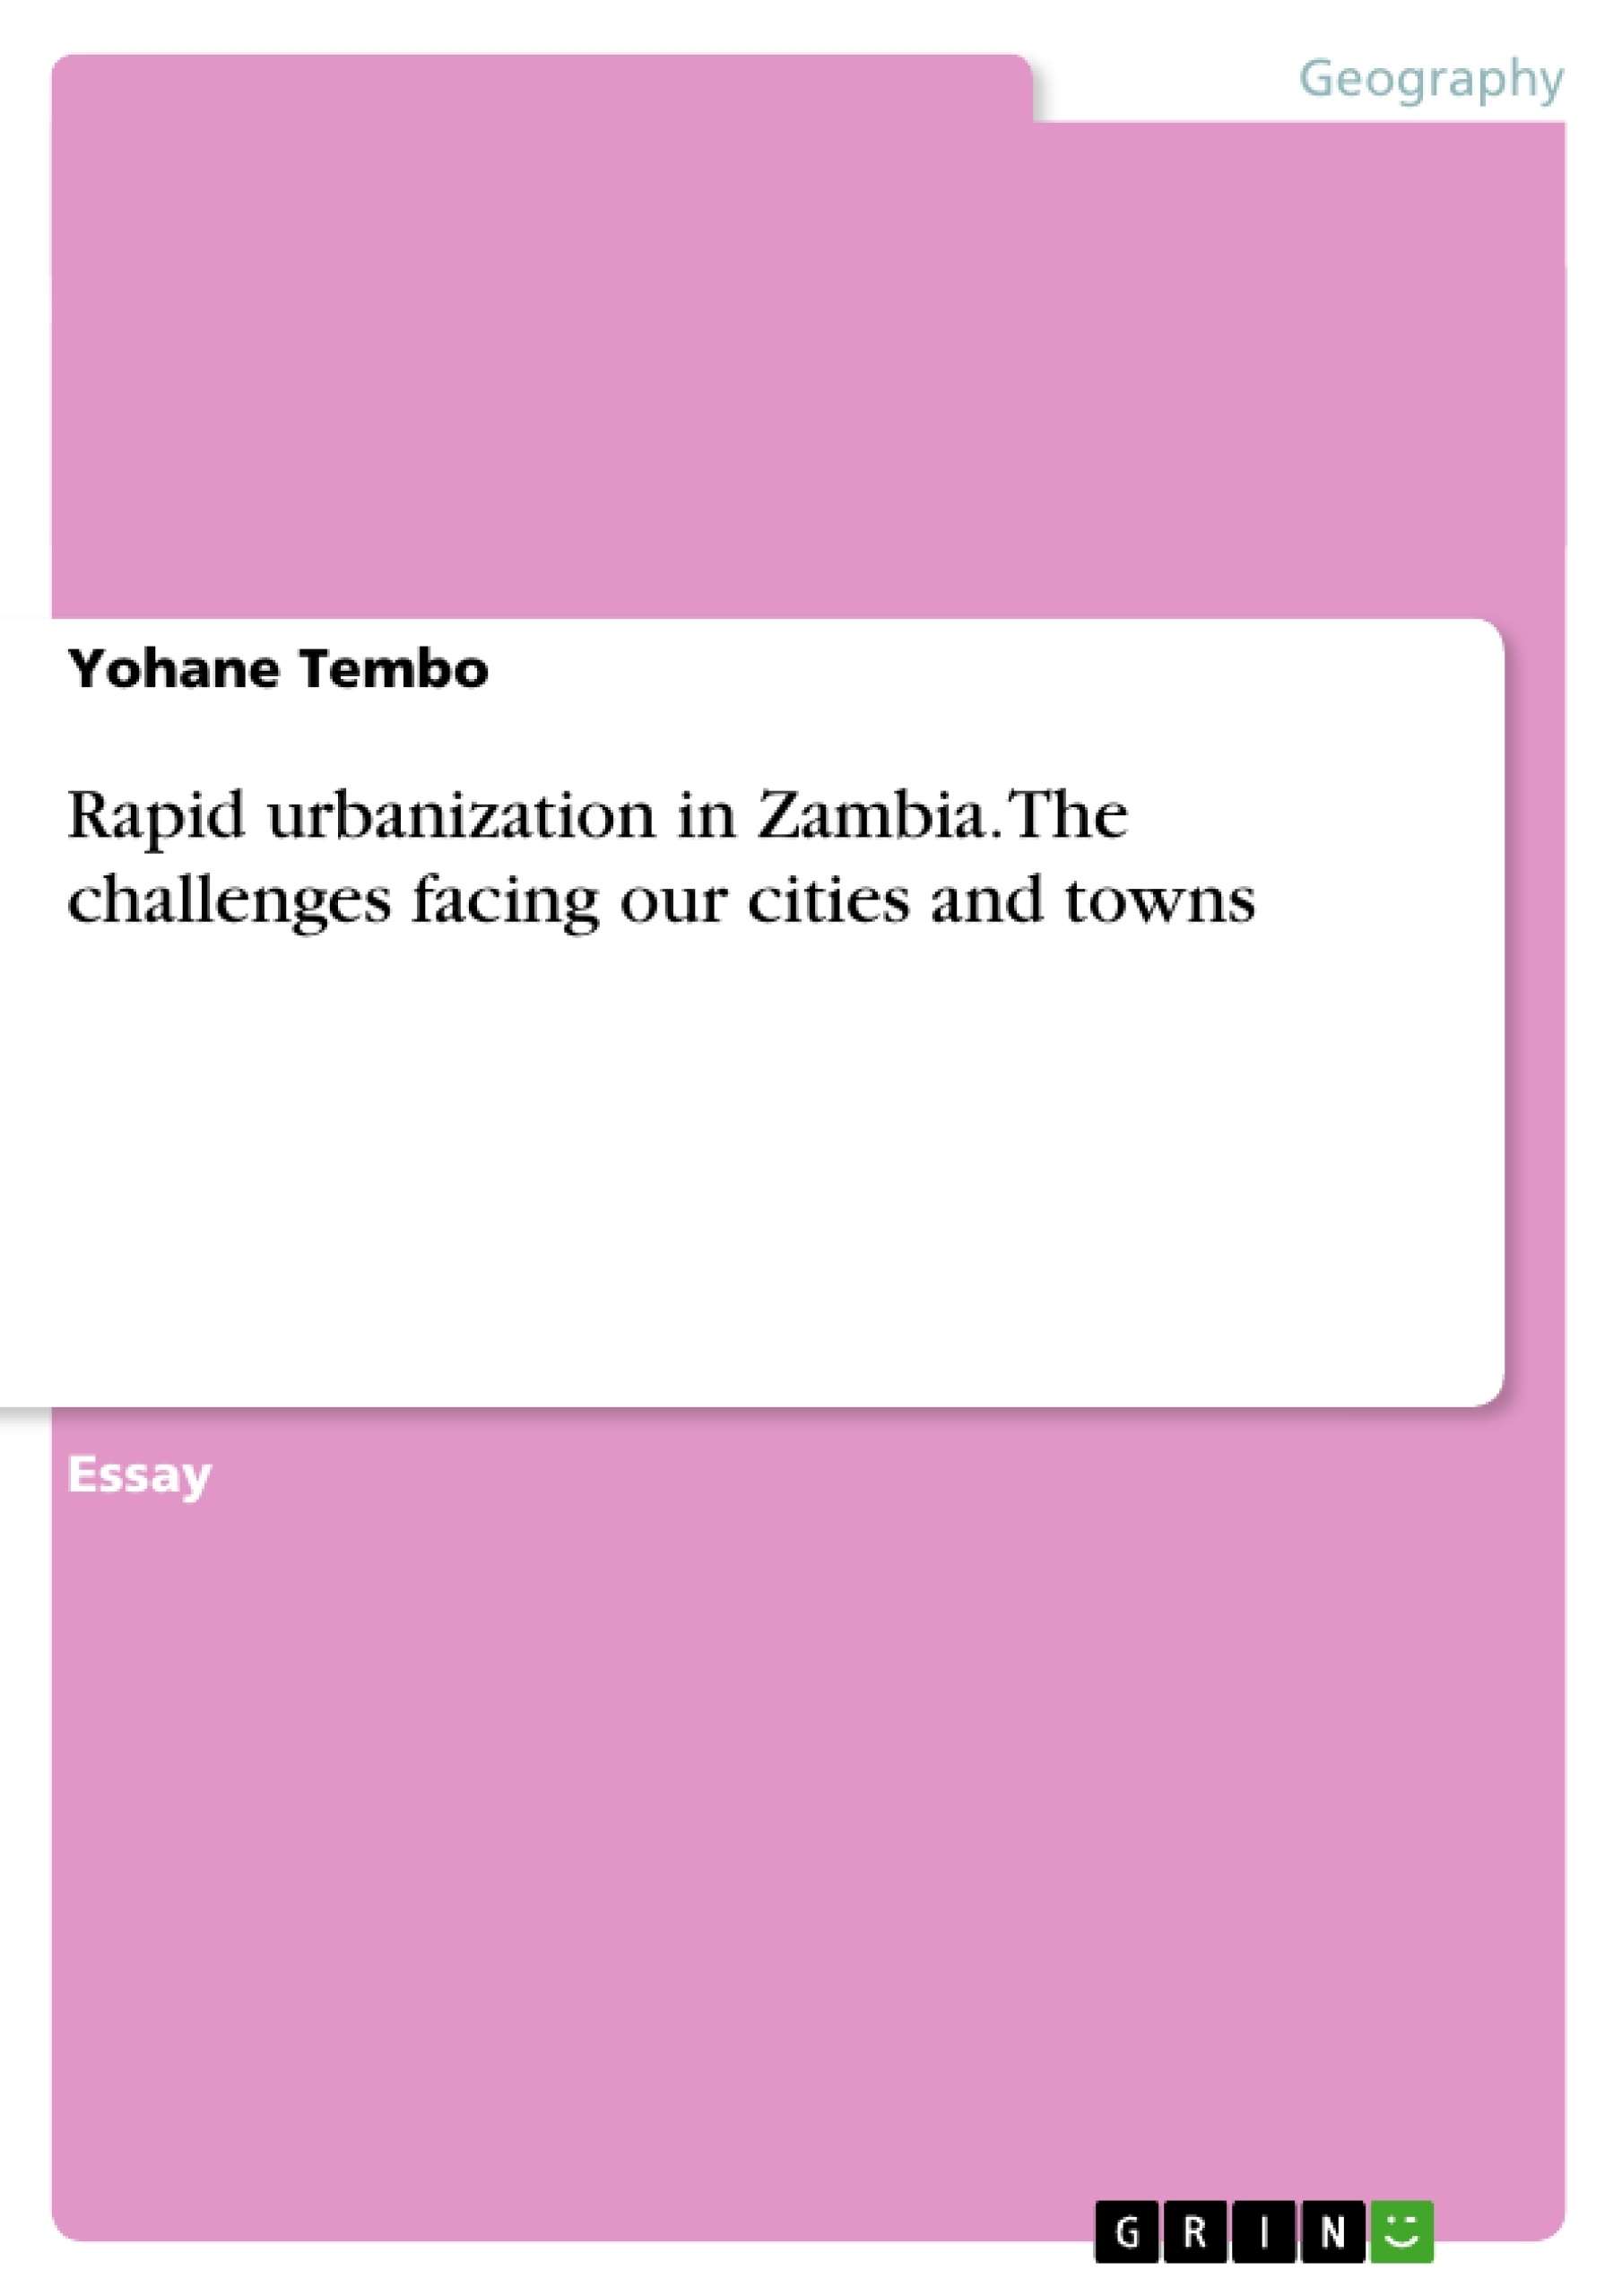 Rapid urbanization in Zambia. The challenges facing our cities and on